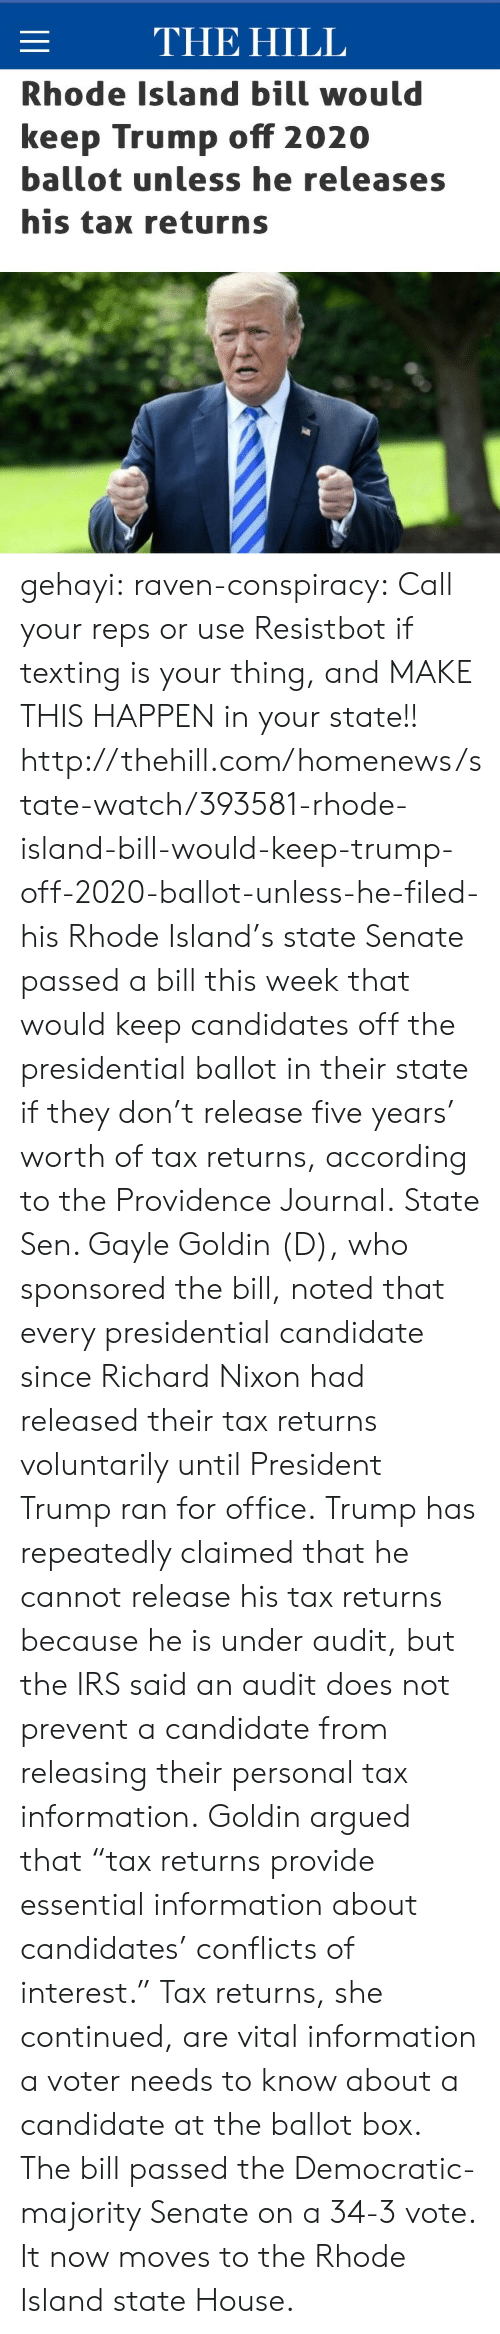 "Fact Check: THE HILL  Rhode Island bill would  keep Trump off 2020  ballot unless he releases  his tax returns gehayi:  raven-conspiracy:  Call your reps or use Resistbot if texting is your thing, and MAKE THIS HAPPEN in your state!!  http://thehill.com/homenews/state-watch/393581-rhode-island-bill-would-keep-trump-off-2020-ballot-unless-he-filed-his   Rhode Island's state Senate passed a bill this week that would keep candidates off the presidential ballot in their state if they don't release five years' worth of tax returns, according to the Providence Journal. State Sen. Gayle Goldin (D), who sponsored the bill, noted that every presidential candidate since Richard Nixon had released their tax returns voluntarily until President Trump ran for office. Trump has repeatedly claimed that he cannot release his tax returns because he is under audit, but the IRS said an audit does not prevent a candidate from releasing their personal tax information. Goldin argued that ""tax returns provide essential information about candidates' conflicts of interest."" Tax returns, she continued, are vital information a voter needs to know about a candidate at the ballot box. The bill passed the Democratic-majority Senate on a 34-3 vote. It now moves to the Rhode Island state House."